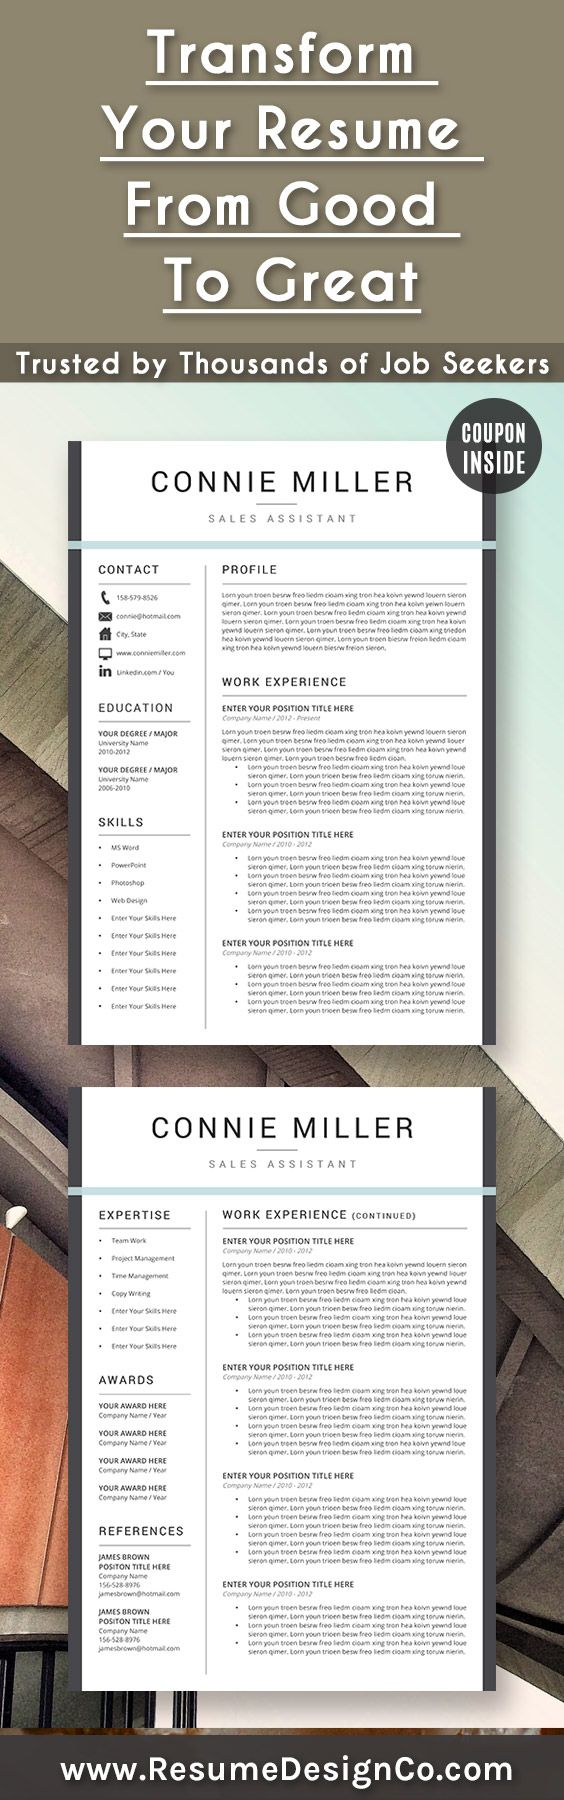 Employee Application Template%0A advertising proposal template